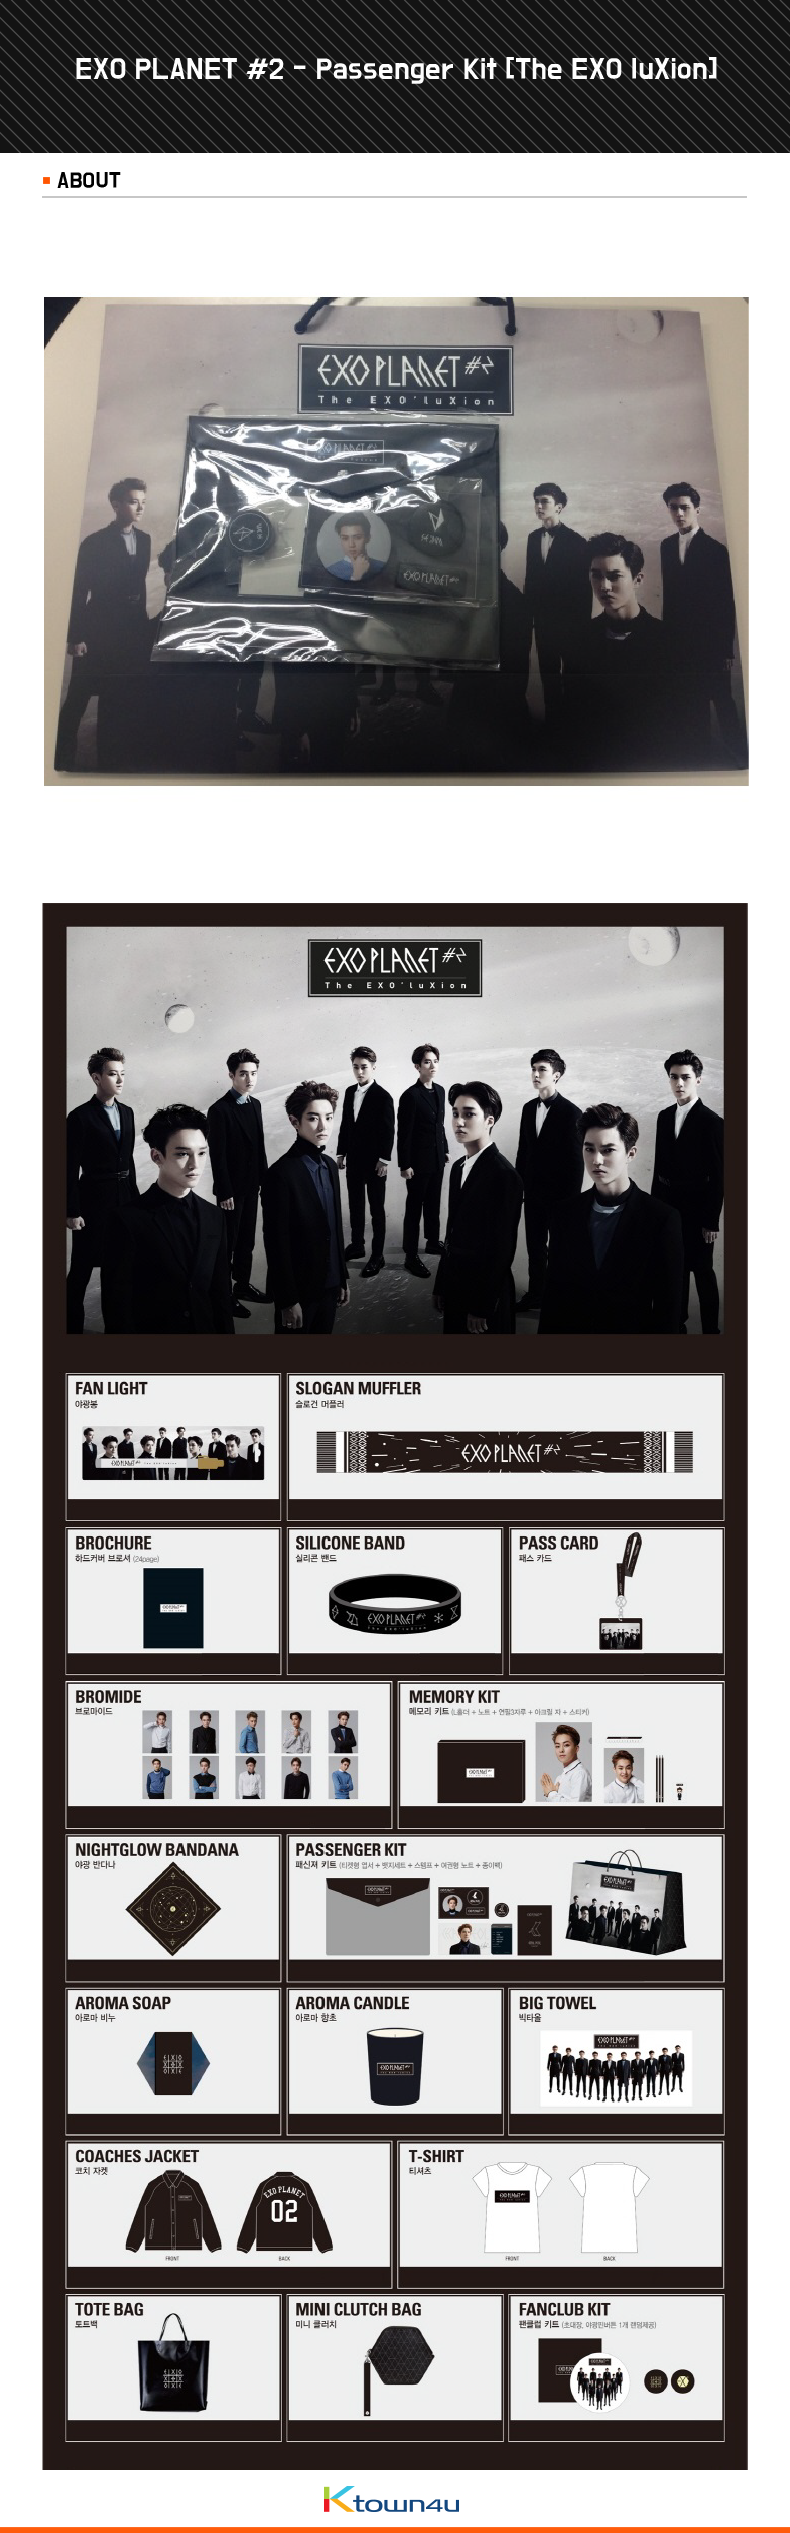 EXO - Passenger Kit [The EXO luXion]